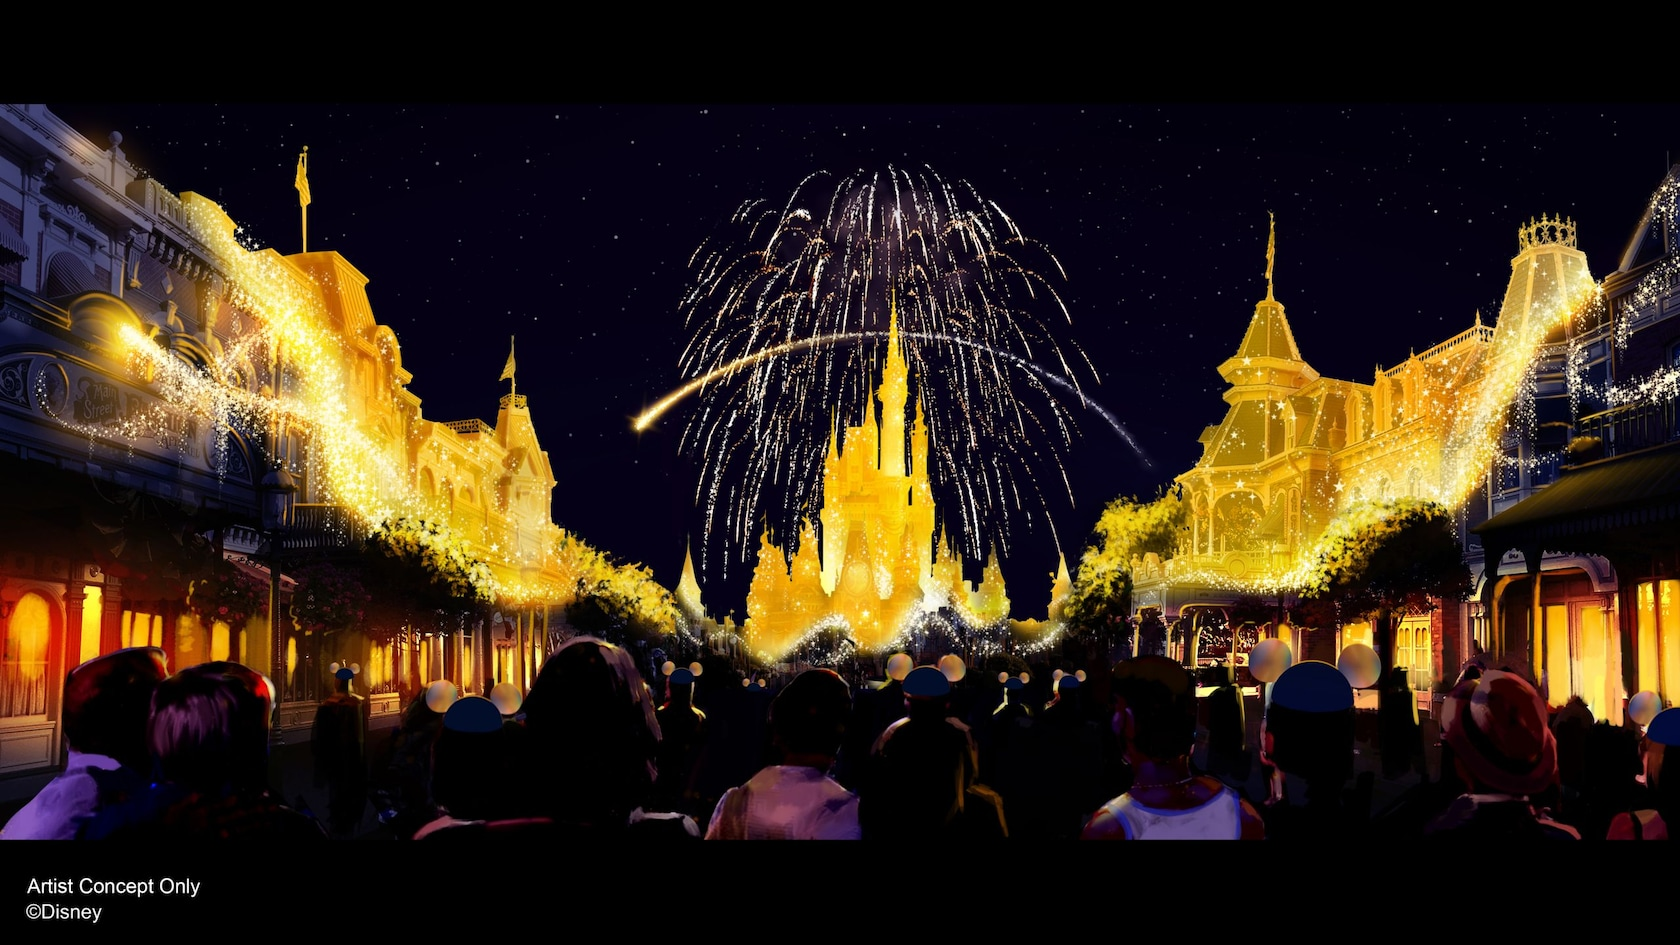 New Disney World Celebrations for the 50th Anniversary